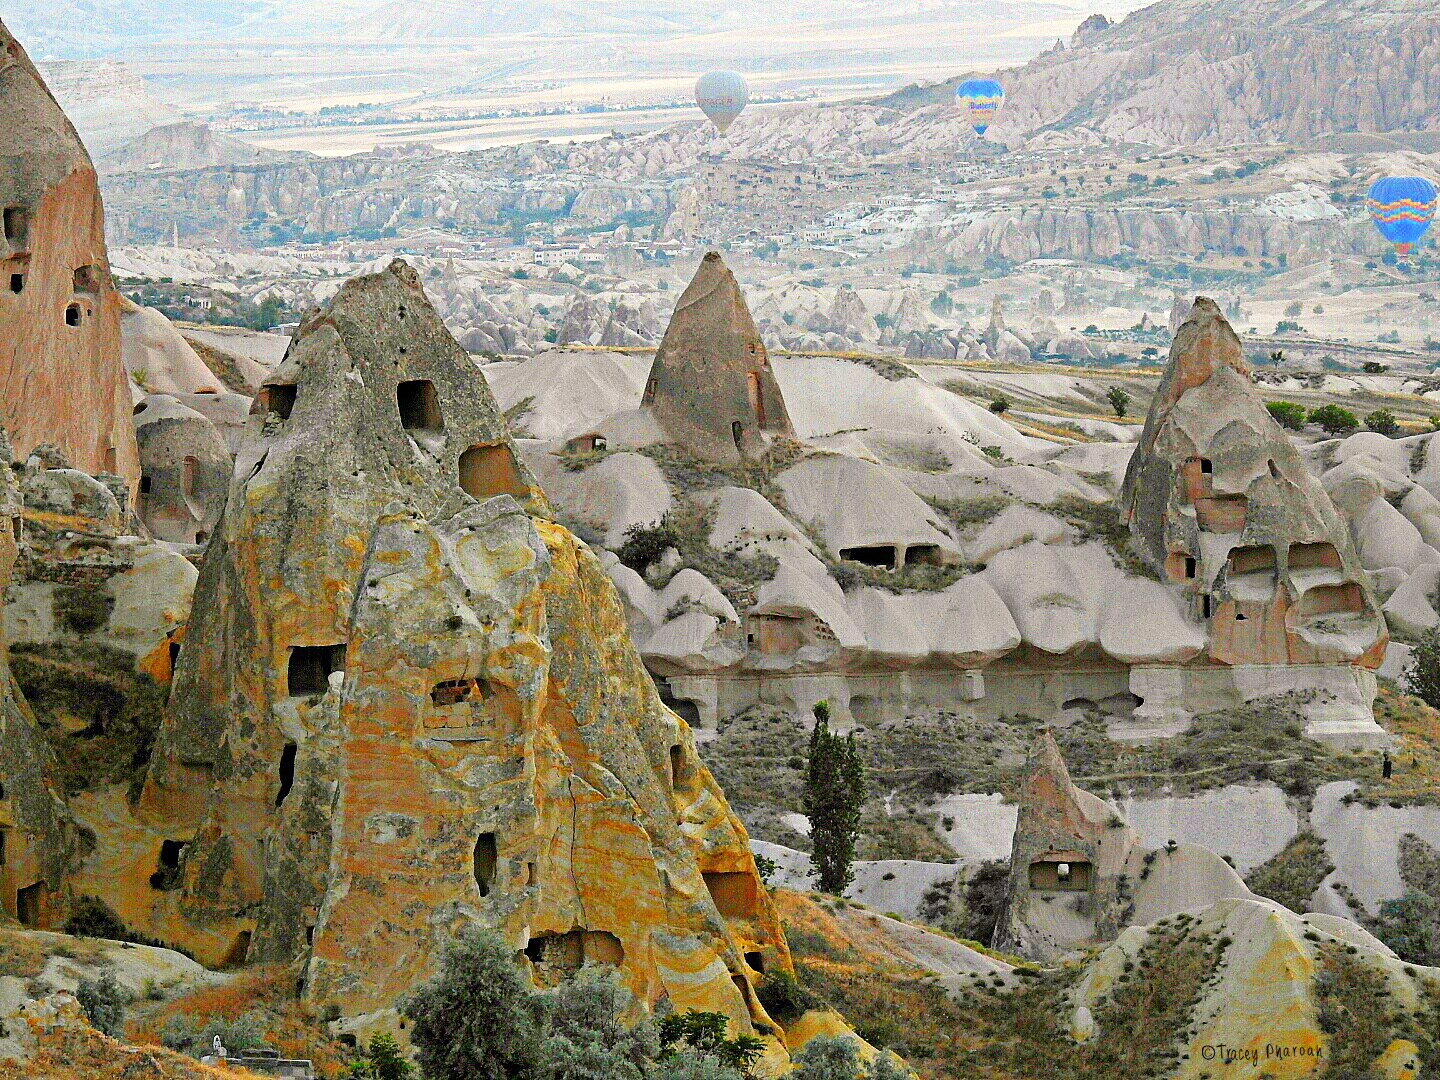 Hot Air Balloons over Goreme, Turkey